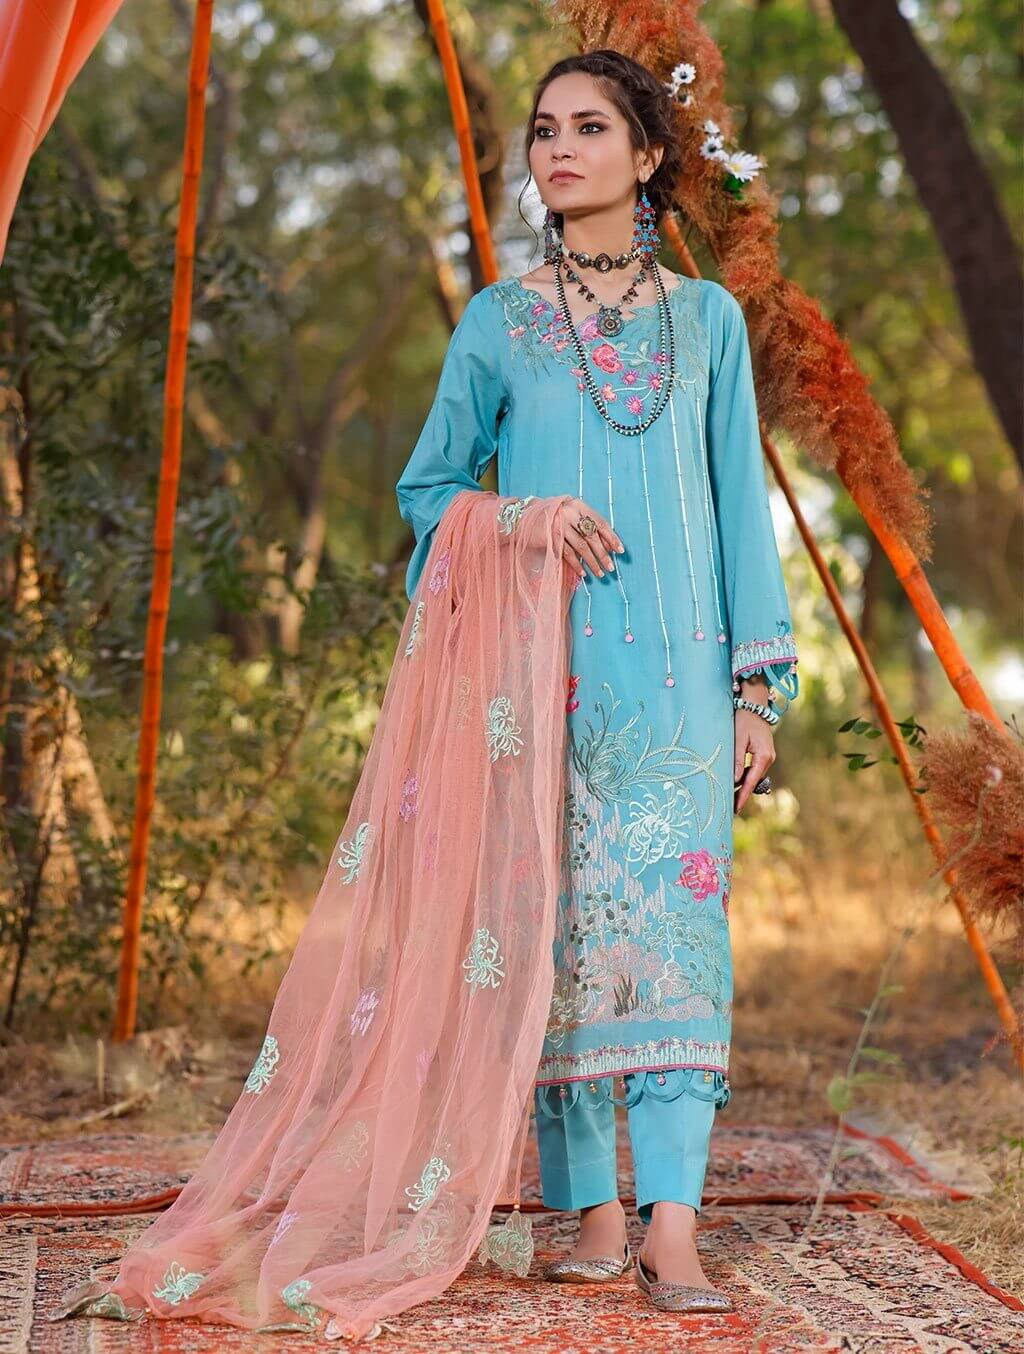 3 Piece Unstitched Embroidered Lawn Suit with Net Dupatta KNE-7017 Khas Lawn 2021 - Volume 2 FASUNSLAD